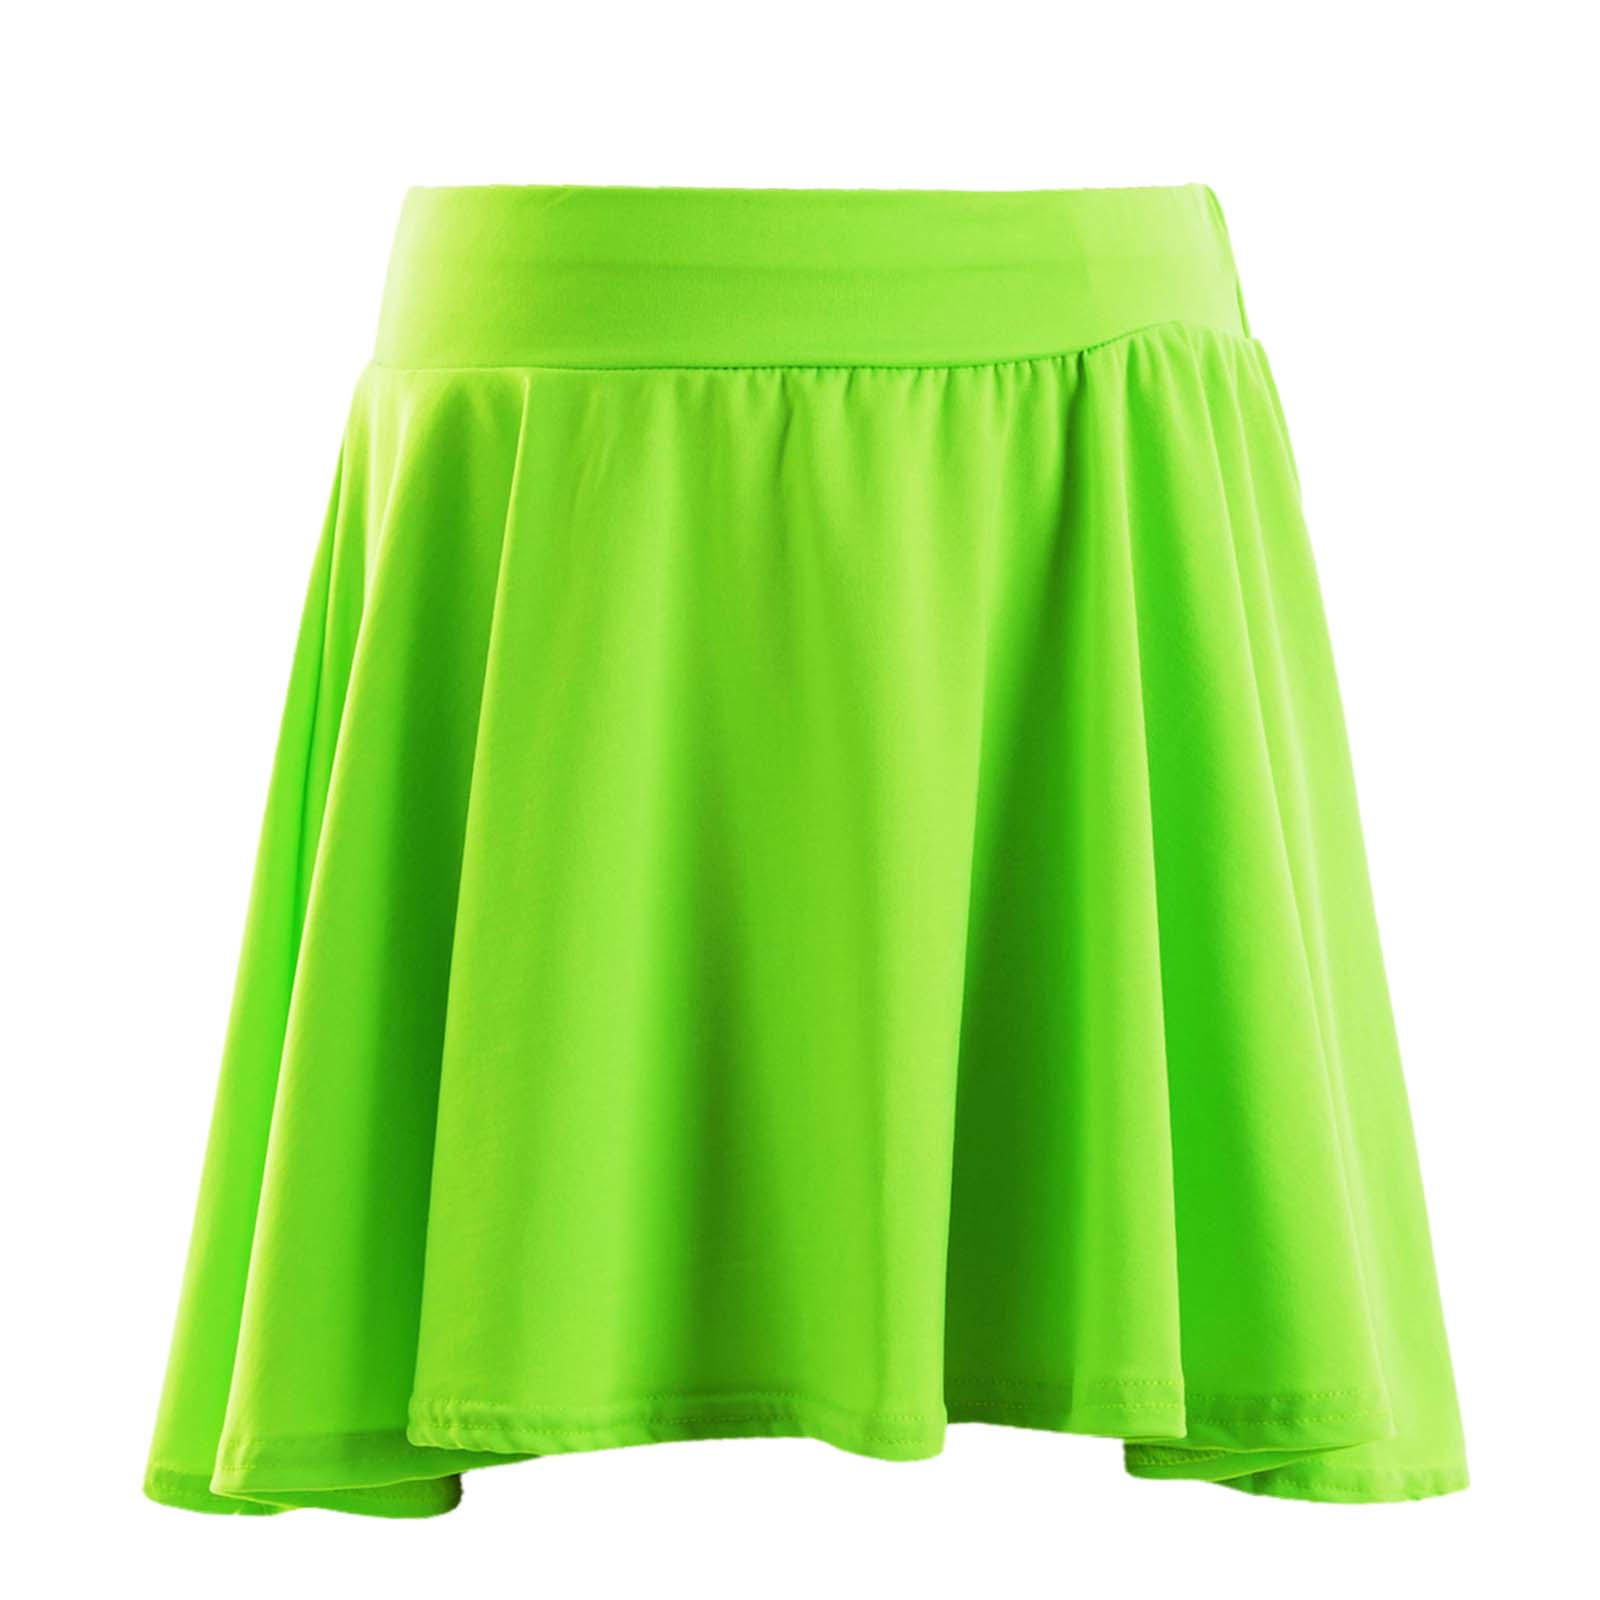 Girls Skater Skirt Kids Neon Bright Mini Fashion Skirts 7 8 9 10 11 12 13 Years